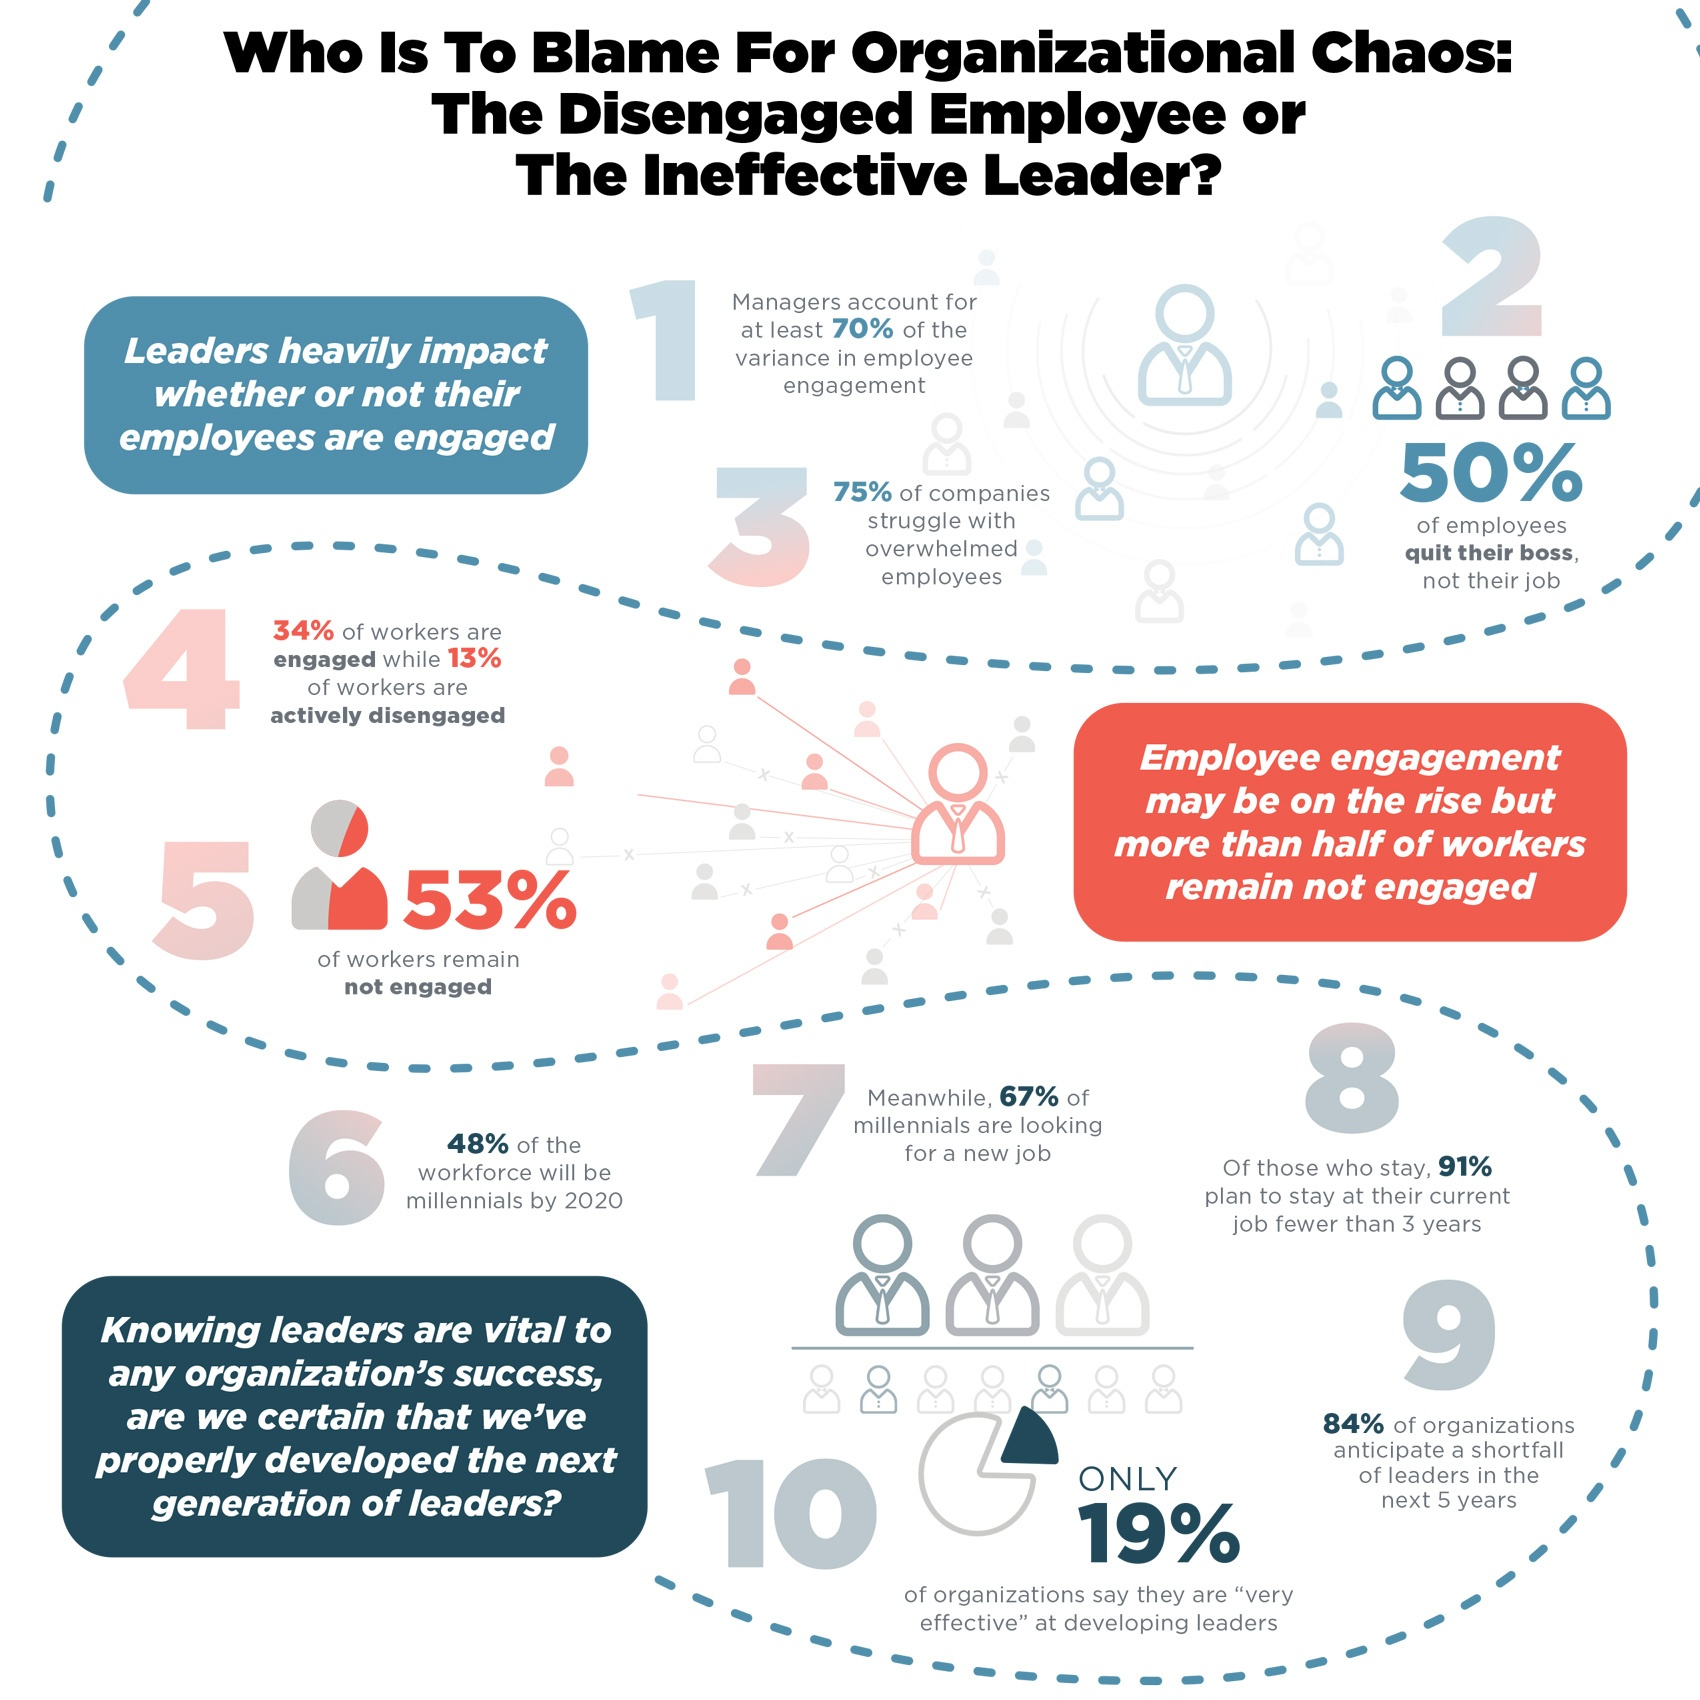 Who Is To Blame For Organizational Chaos: The Disengaged Employee or The Ineffective Leader?